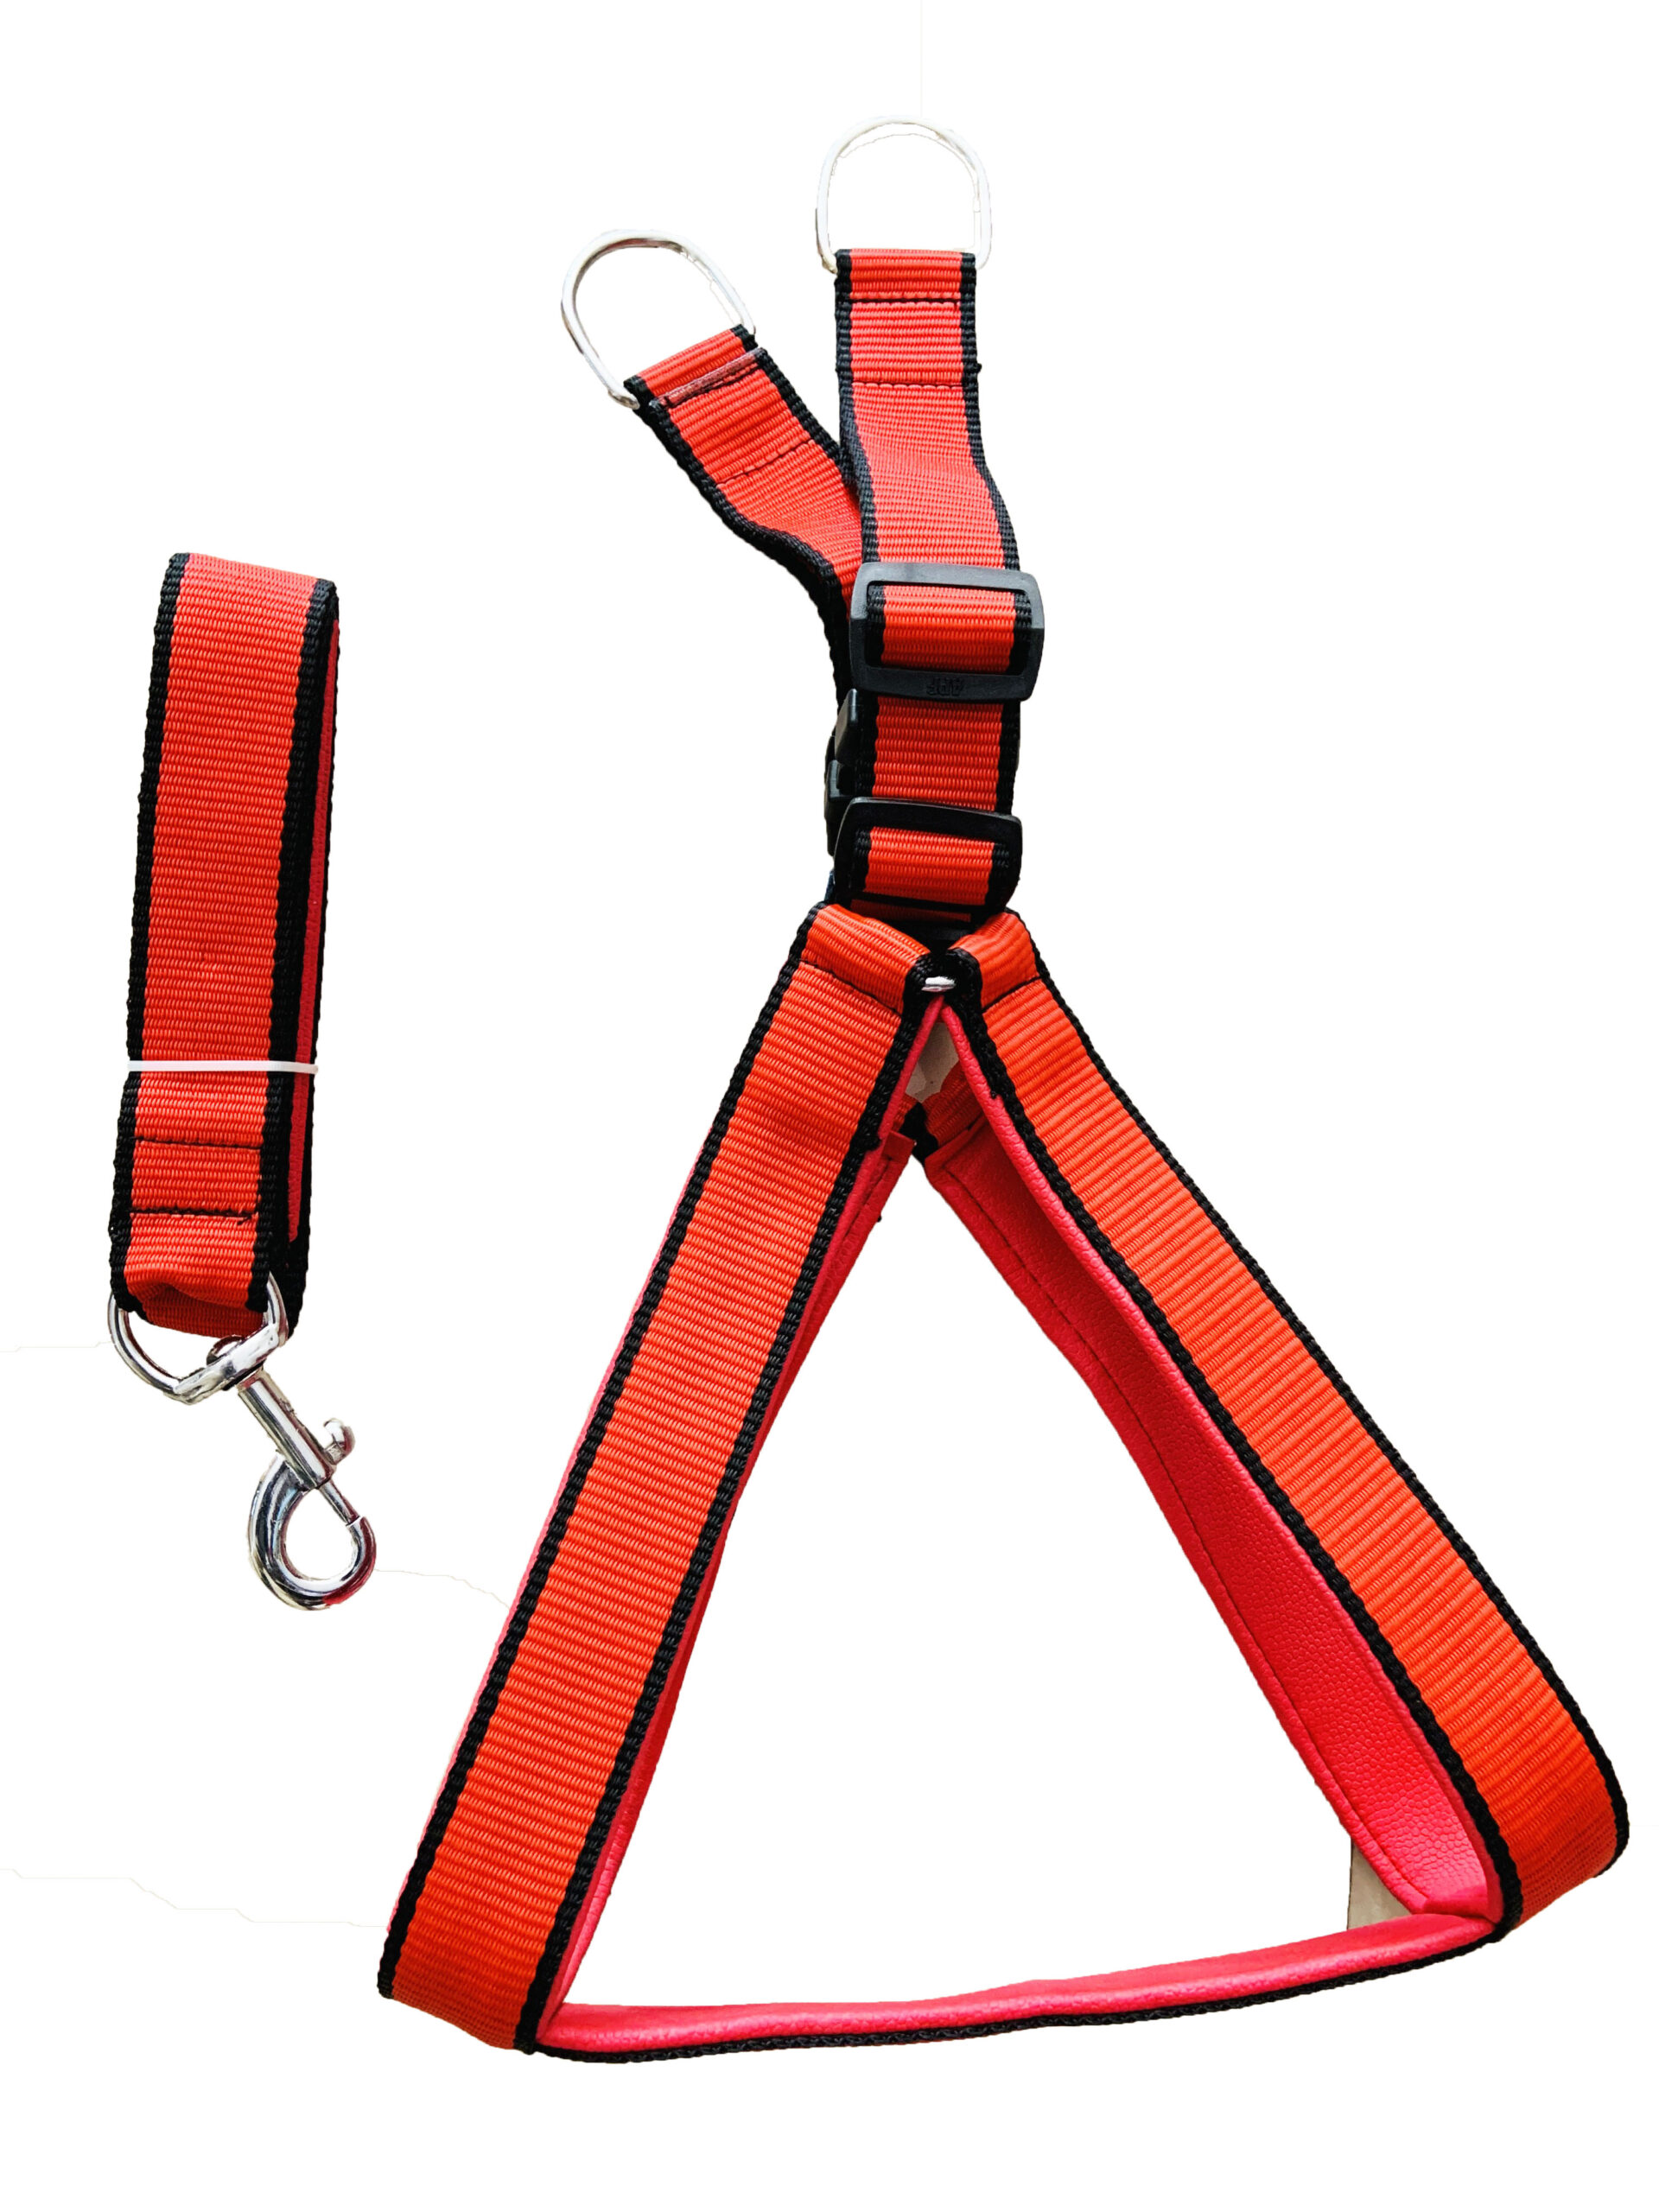 dogs harness